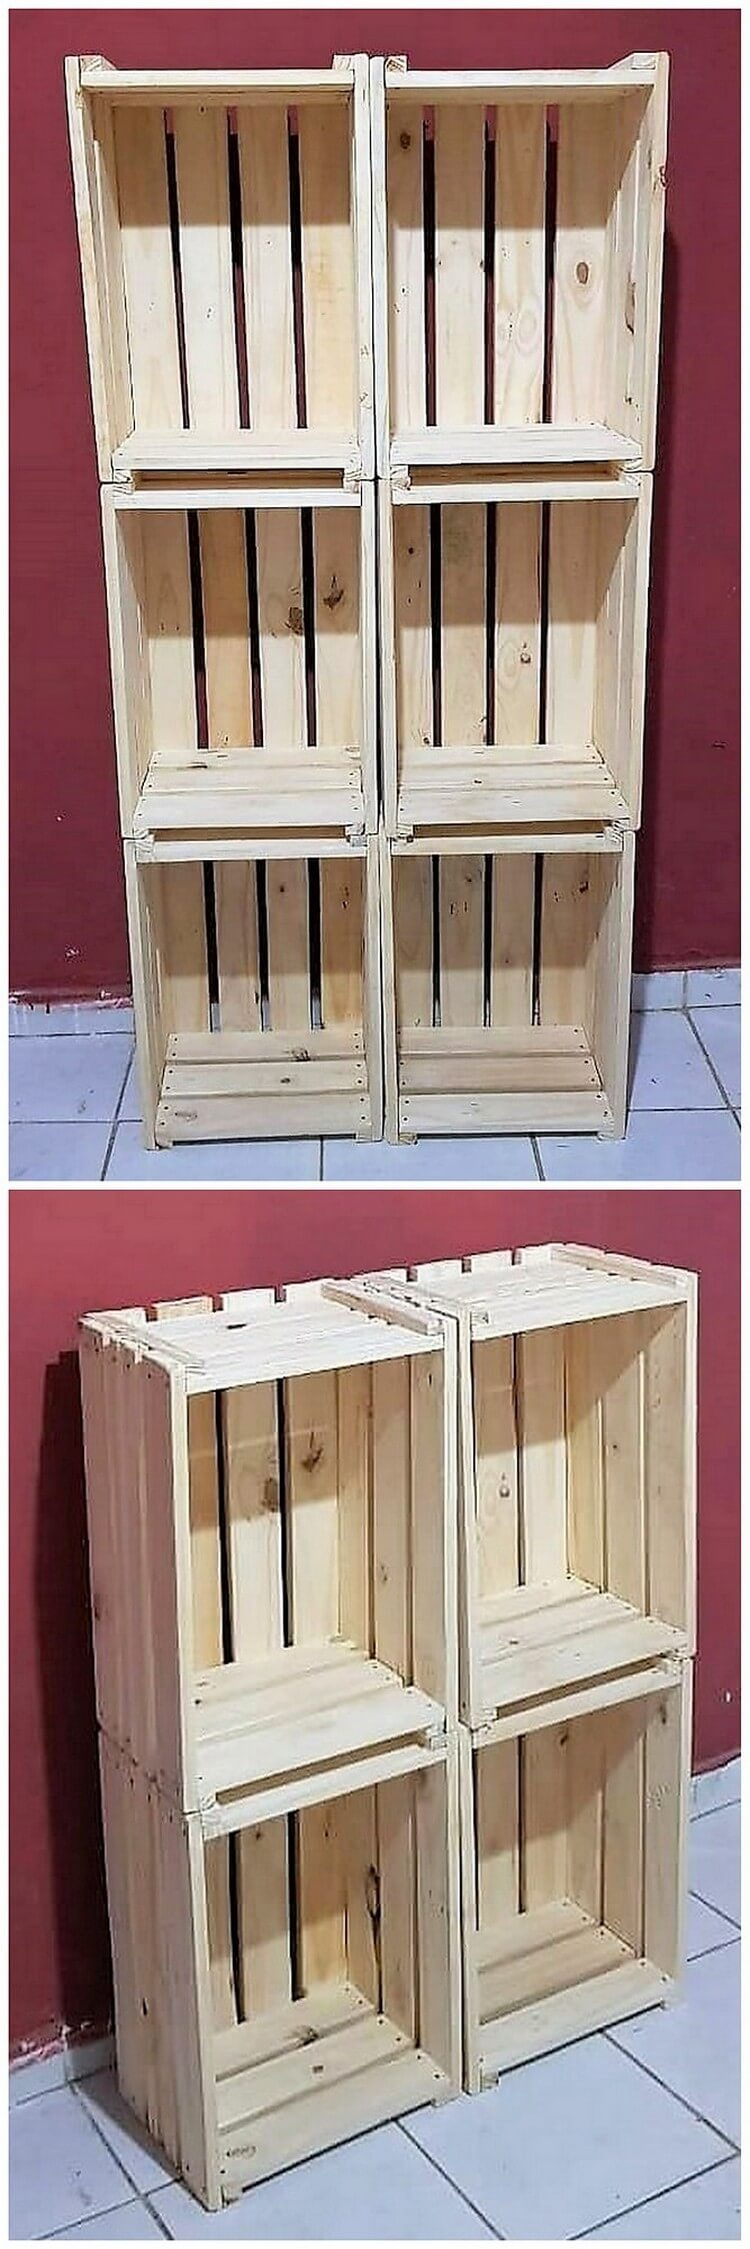 Pallet and Crates Shelving Unit